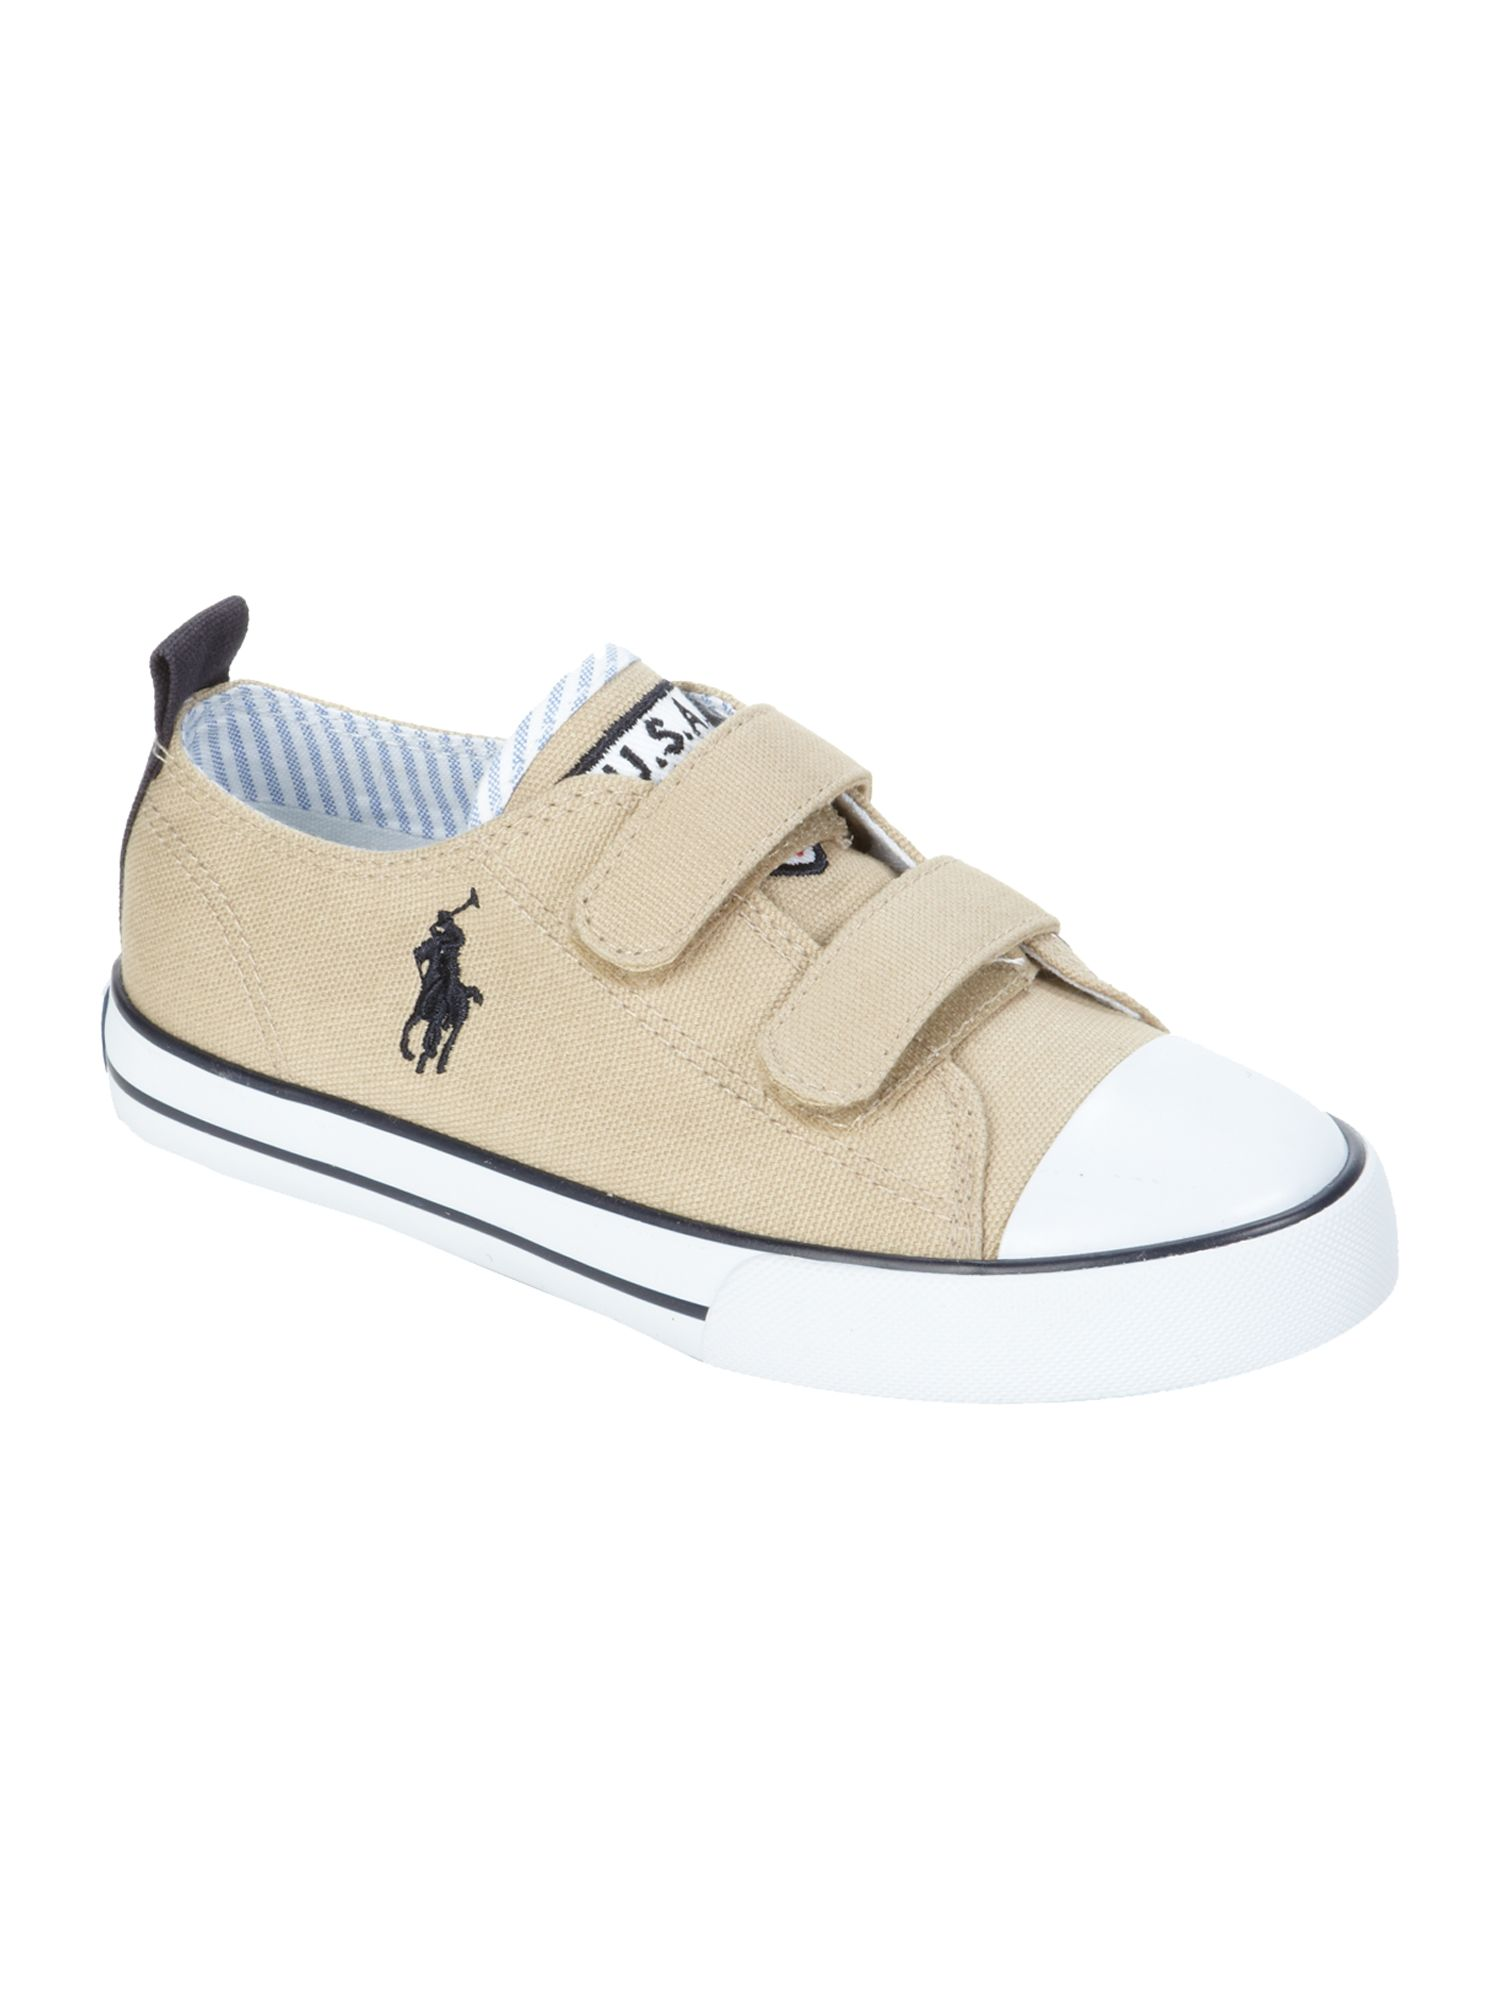 Boy`s canvas velcro plimsole